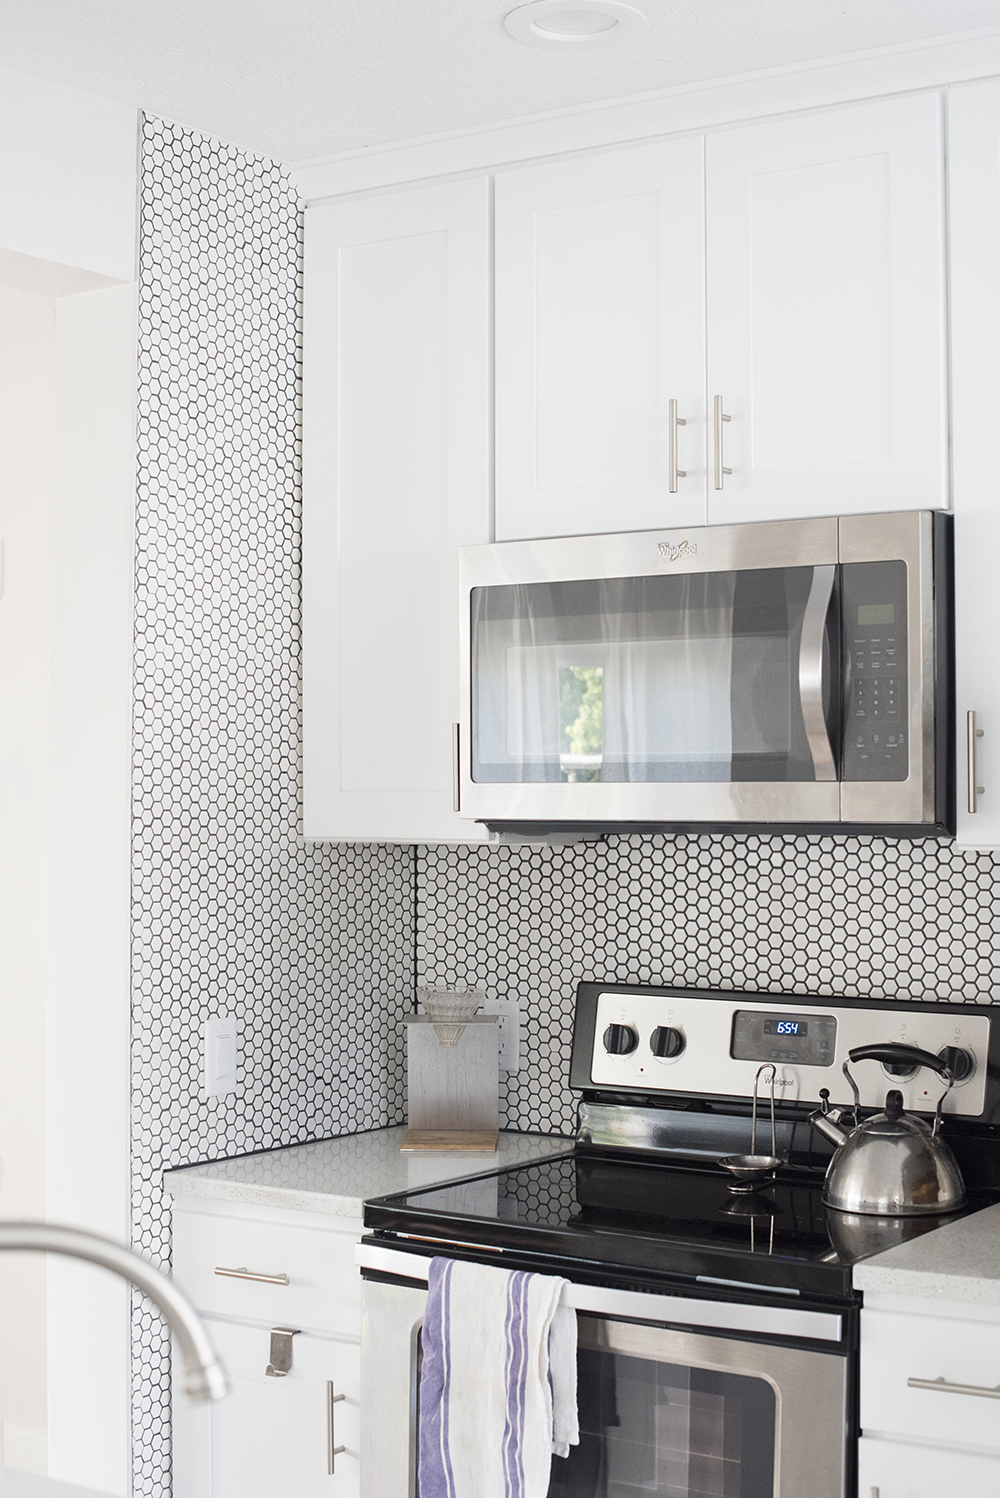 White Hex Tile With Black Grout Backsplash Room For Tuesday